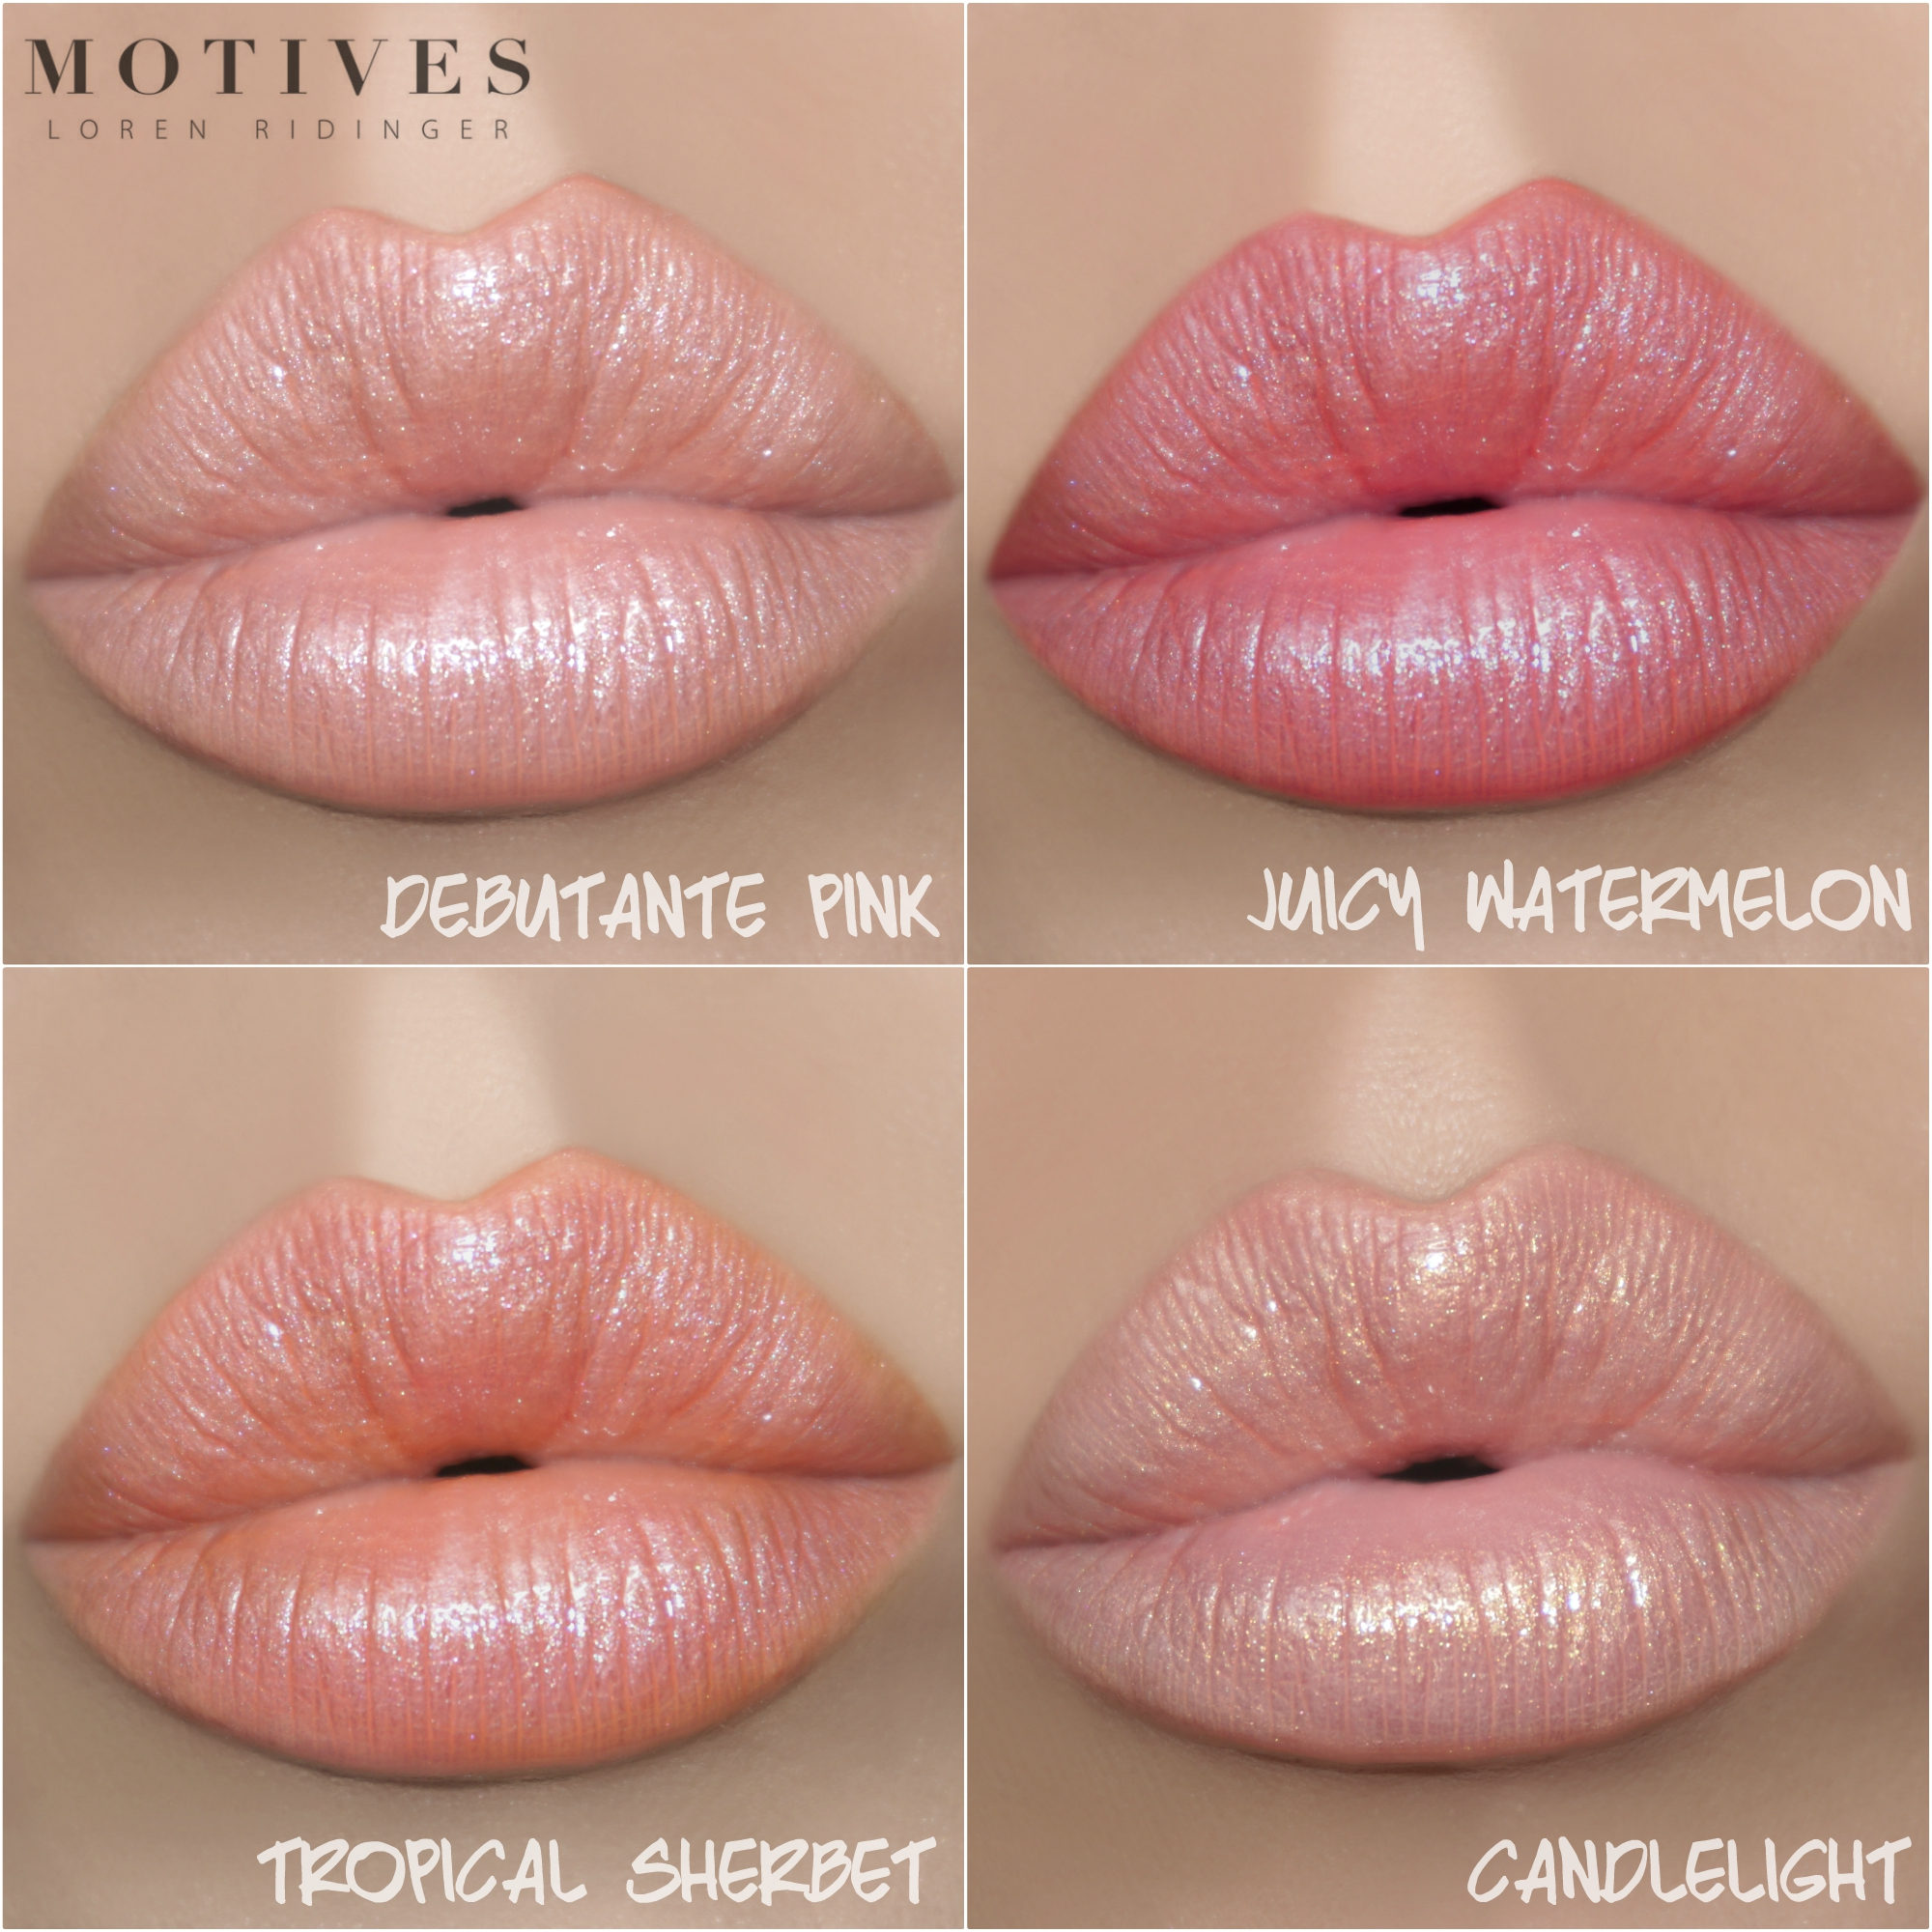 4 Shades of Summer-Ready Lip Shines from Motives Cosmetics